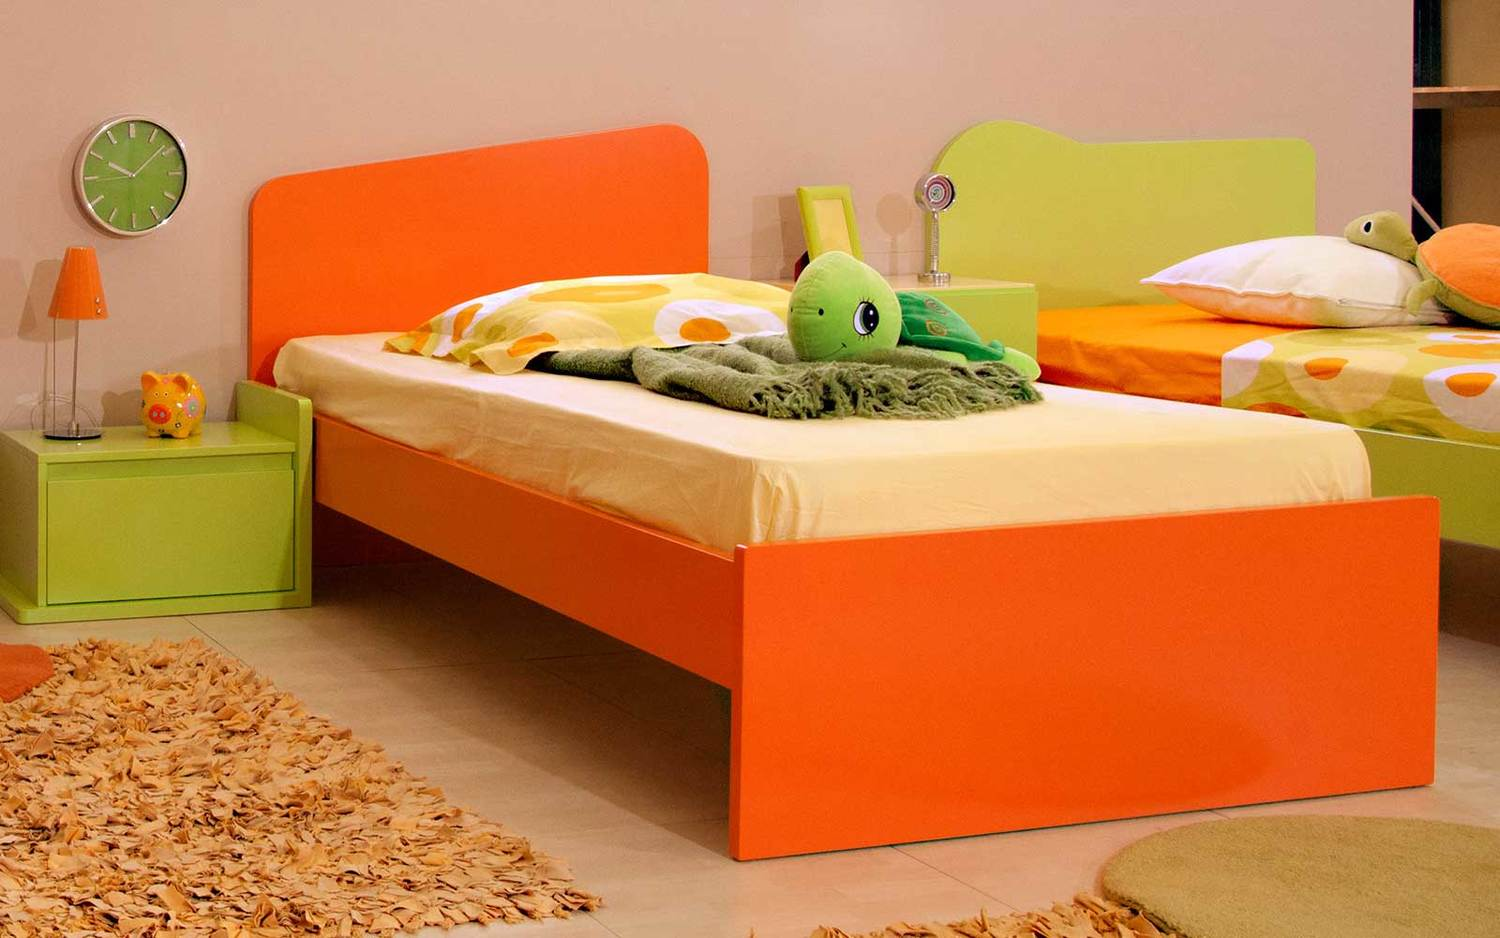 Baby bed with slide - Slide Slide Baby Bed Slide Slide Baby Bed